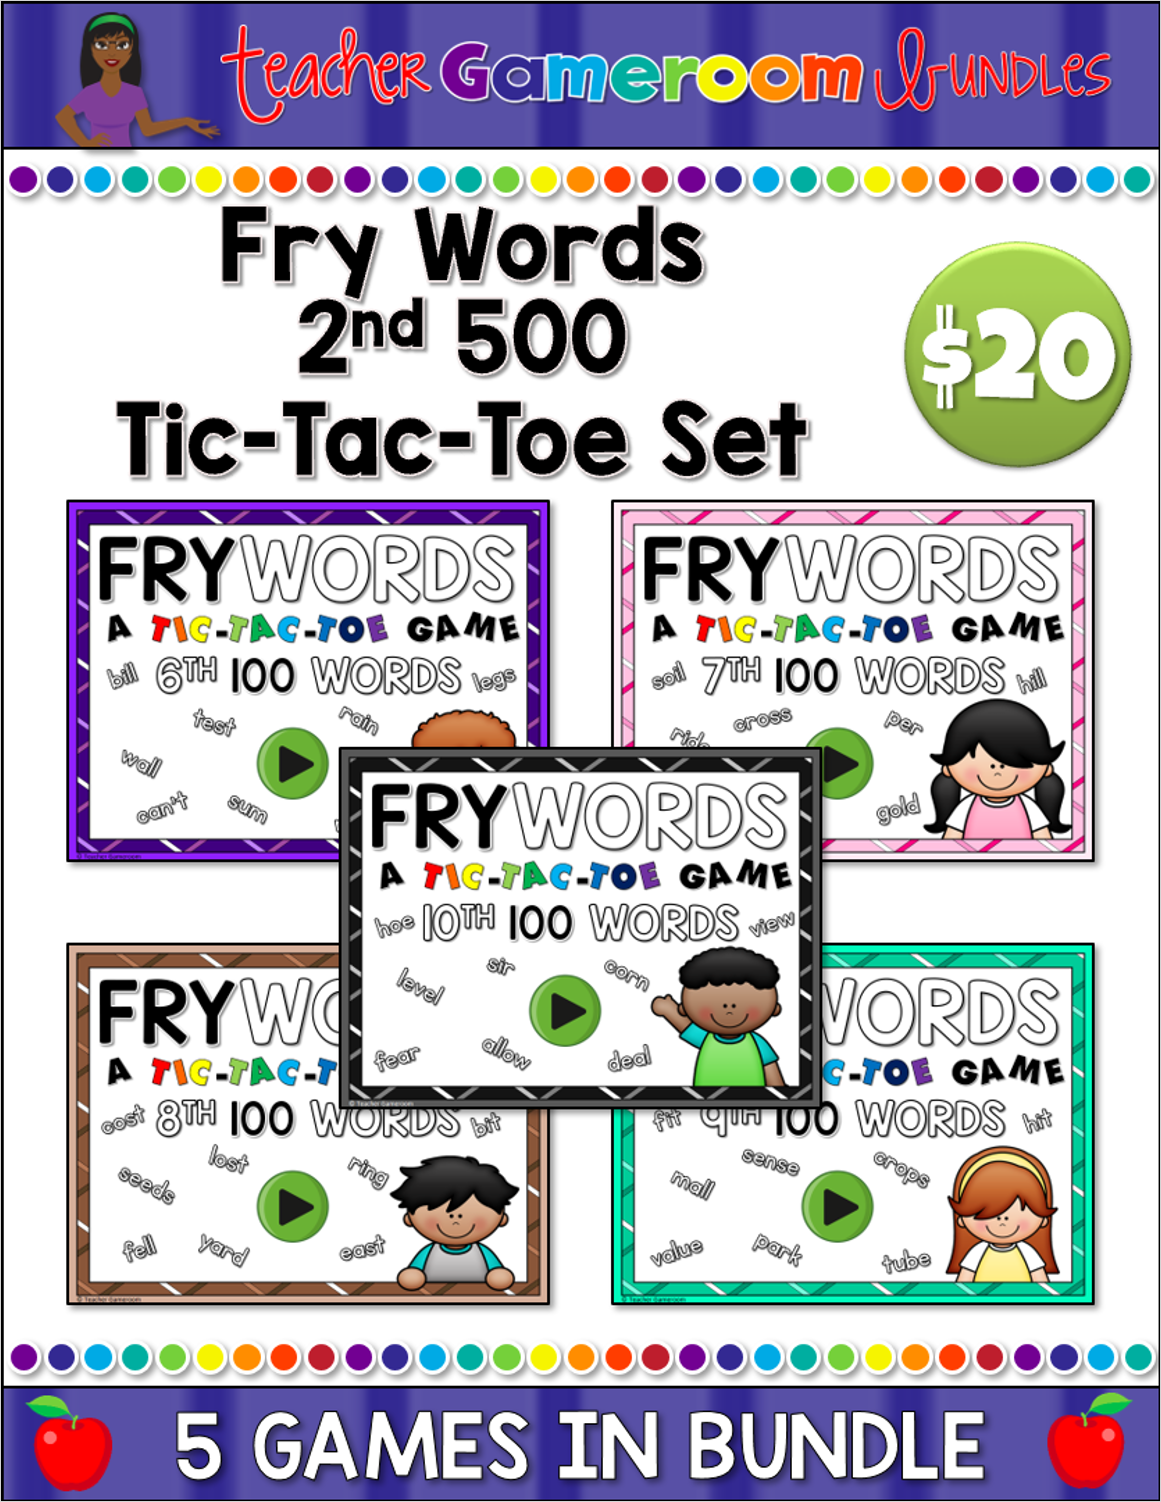 Fry Words 2nd 500 Tic-Tac-Toe Complete Set